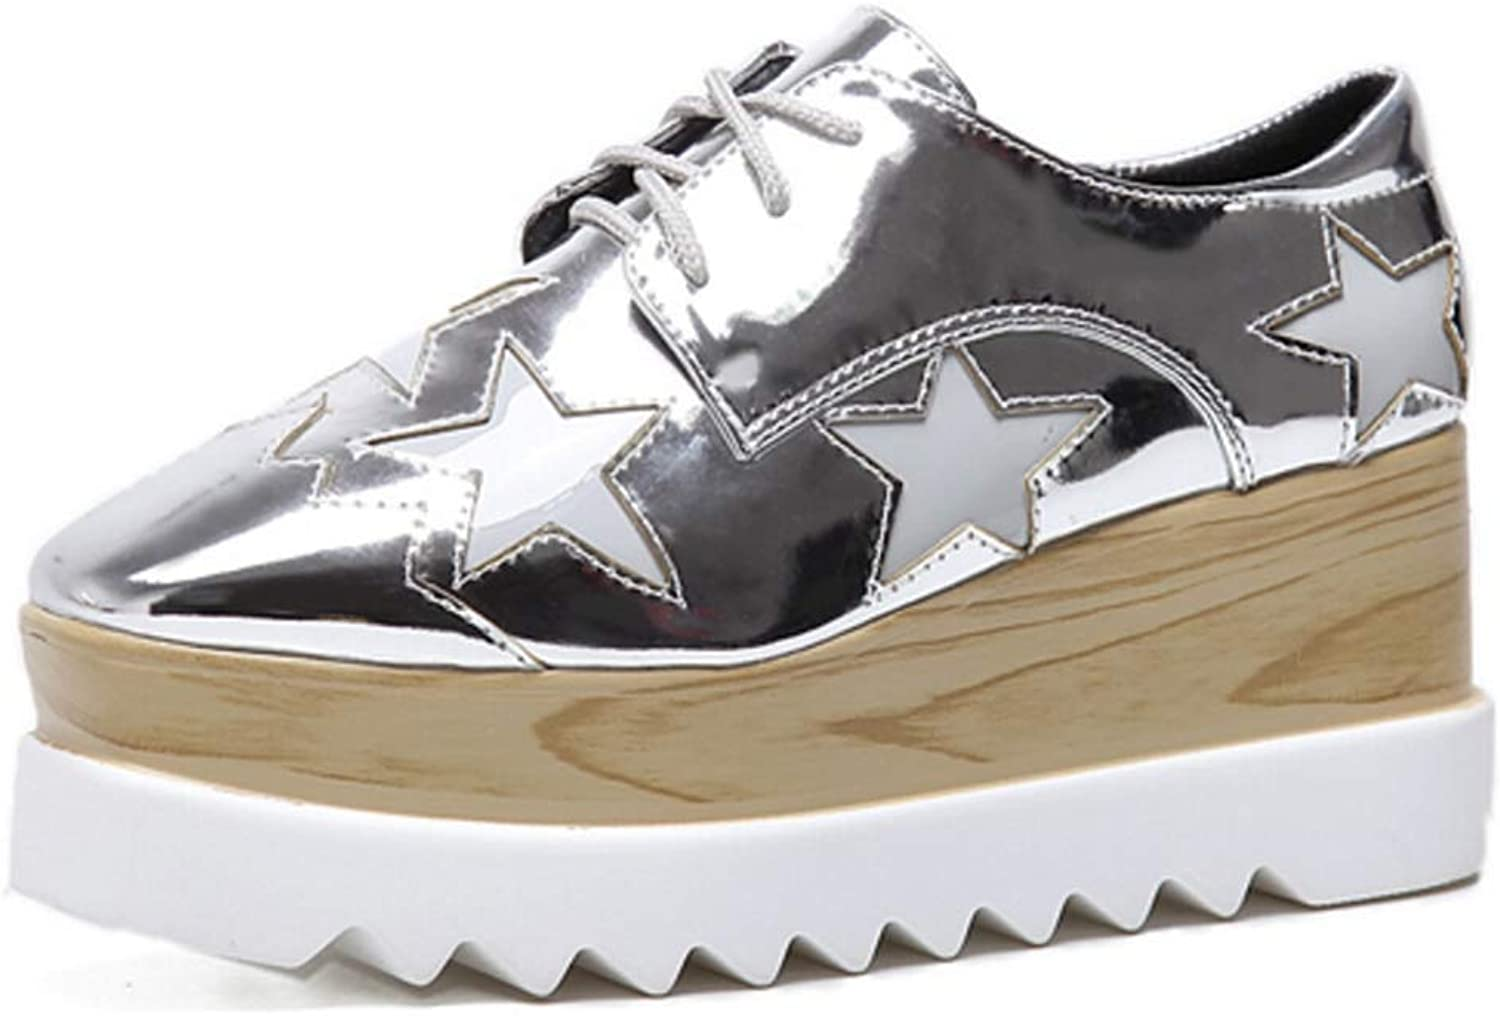 Fullwill Women's Wood Platform Star Oxford shoes Casual Square Toe Lace-up Mid Heel Wedges Creepers